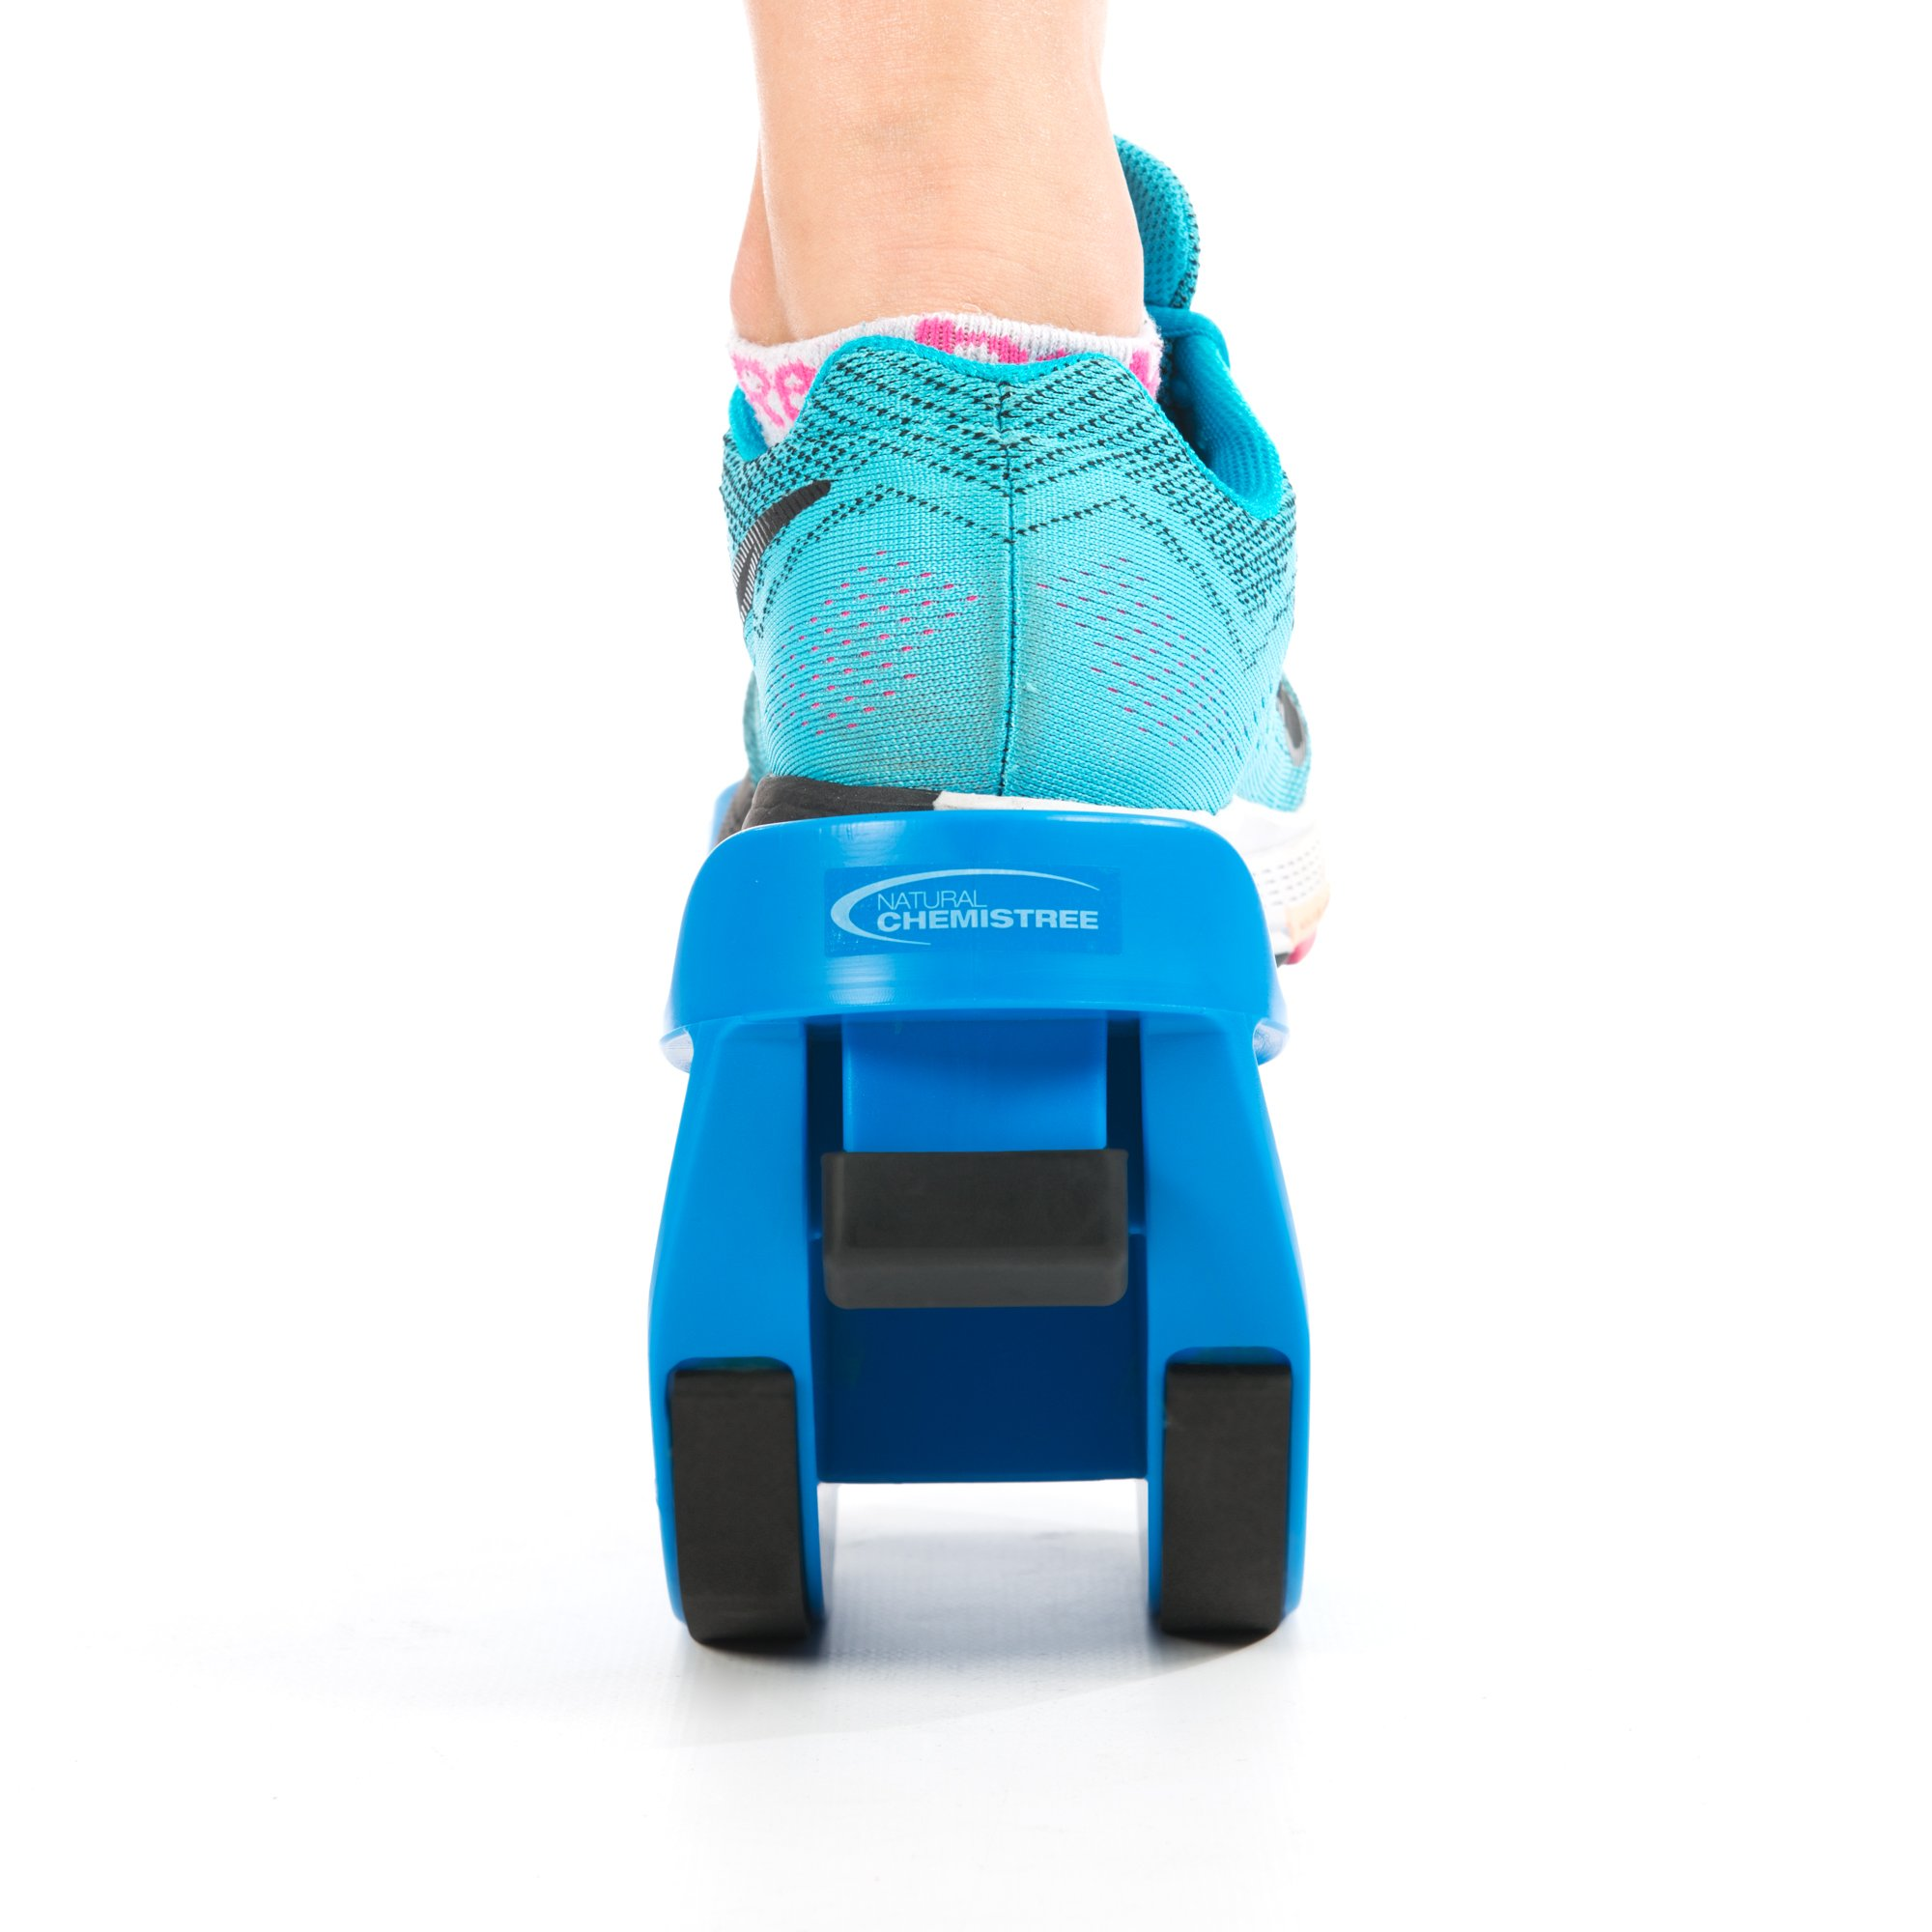 Foot Rocker. Durable Calf Stretcher Device for Achillies Tendonitis. Improve Plantar Fasciitis, Calf Flexibility, Ankle Mobility. Feet and Shin Splint Relief. Great for Physical Therapy, Athletes, Phy by Natural Chemistree (Image #5)